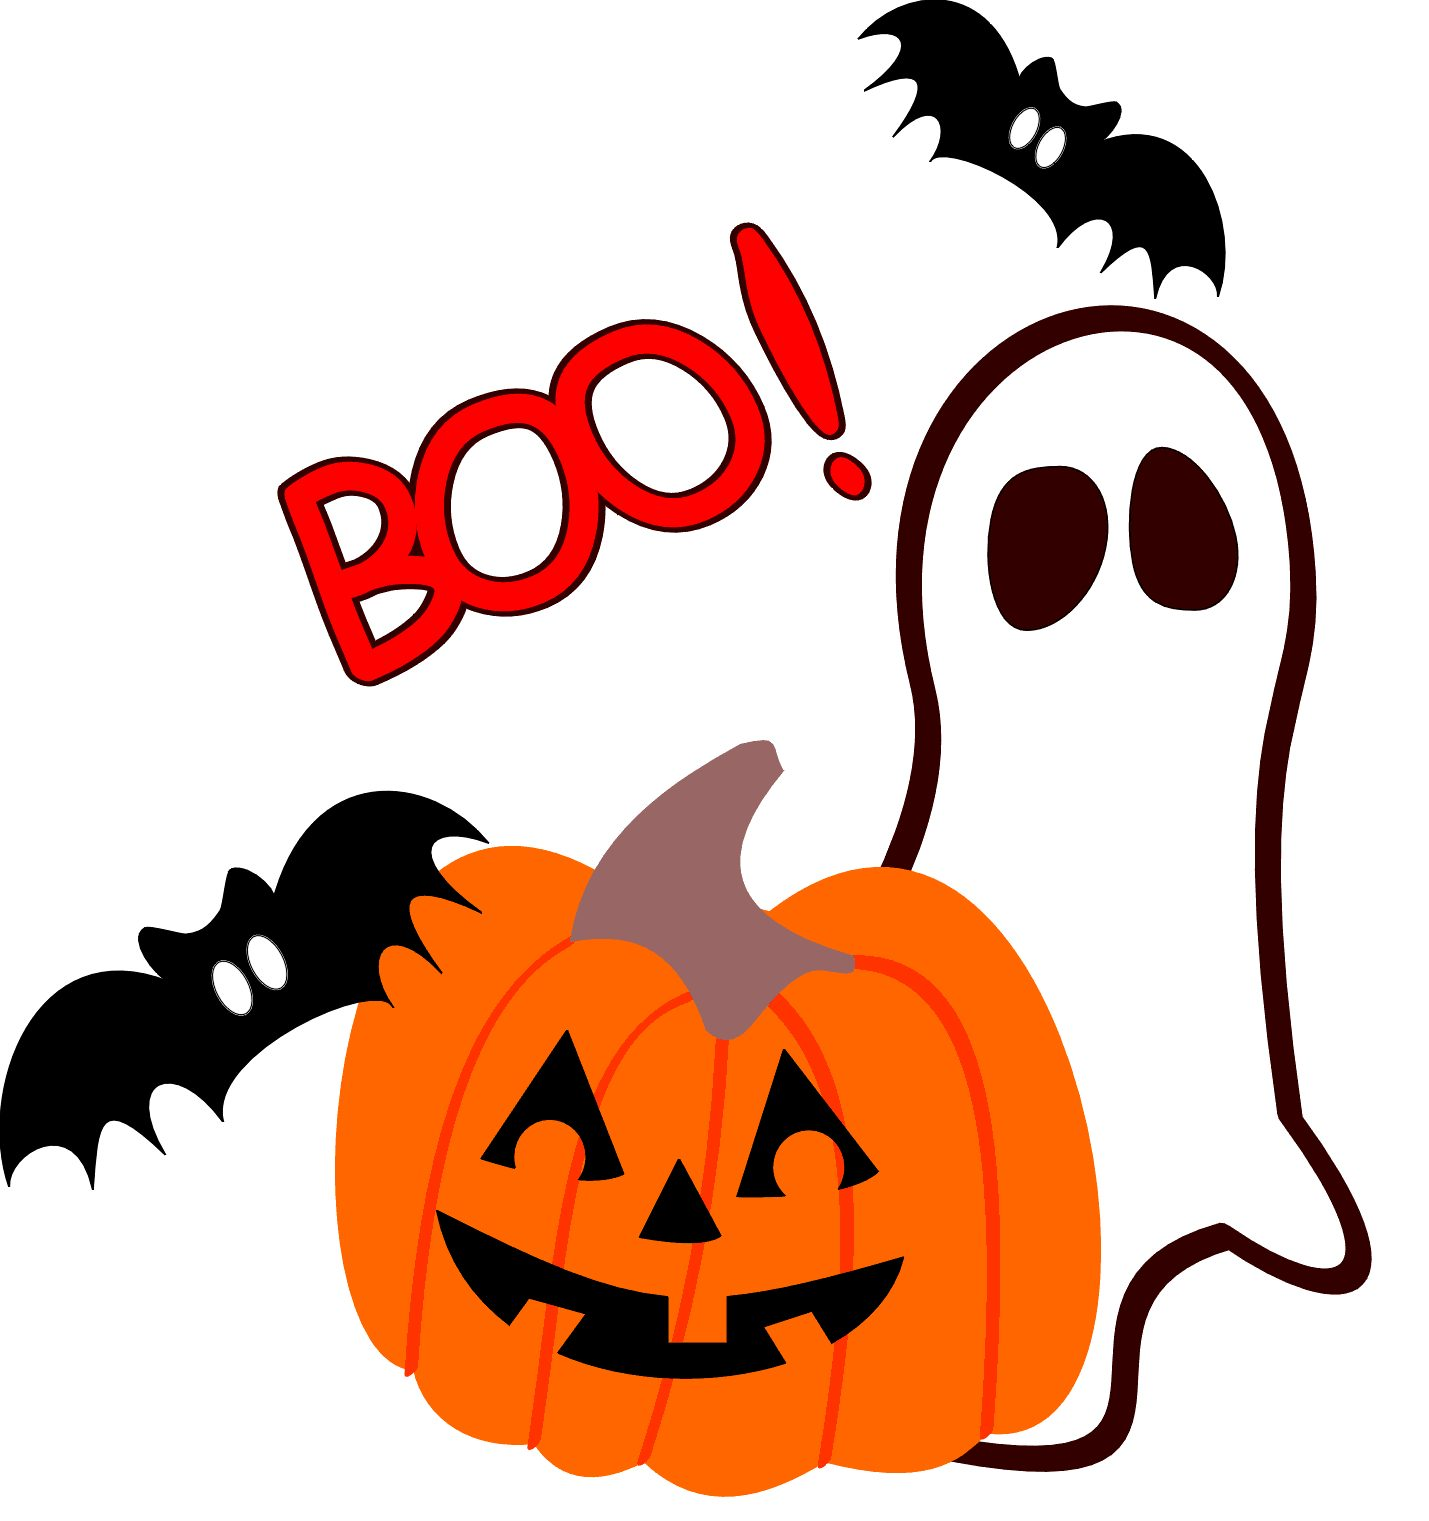 Boo Cute Halloween Clipart